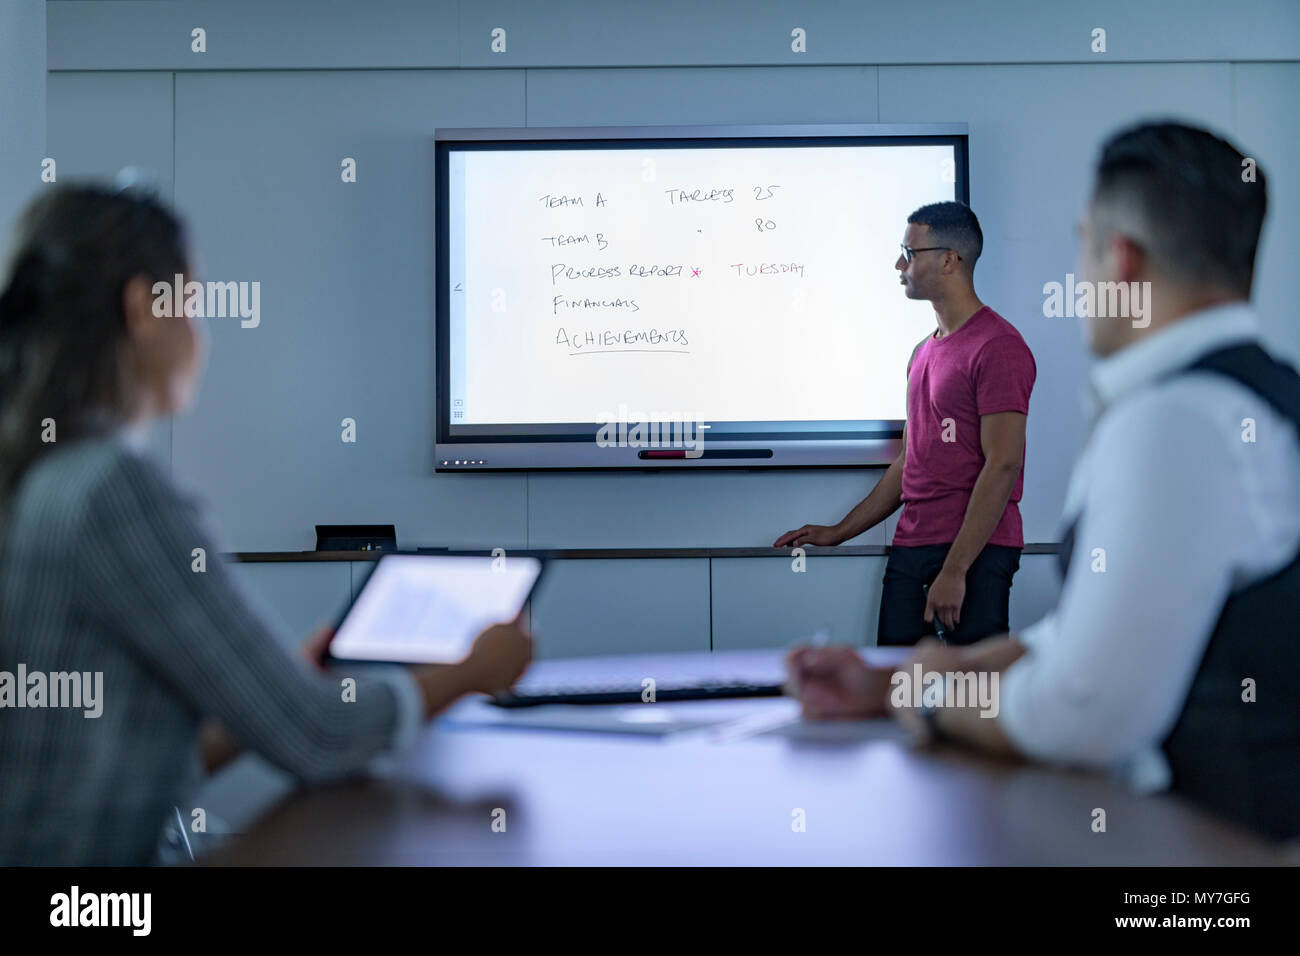 Businessman writing on interactive screen in business meeting - Stock Image